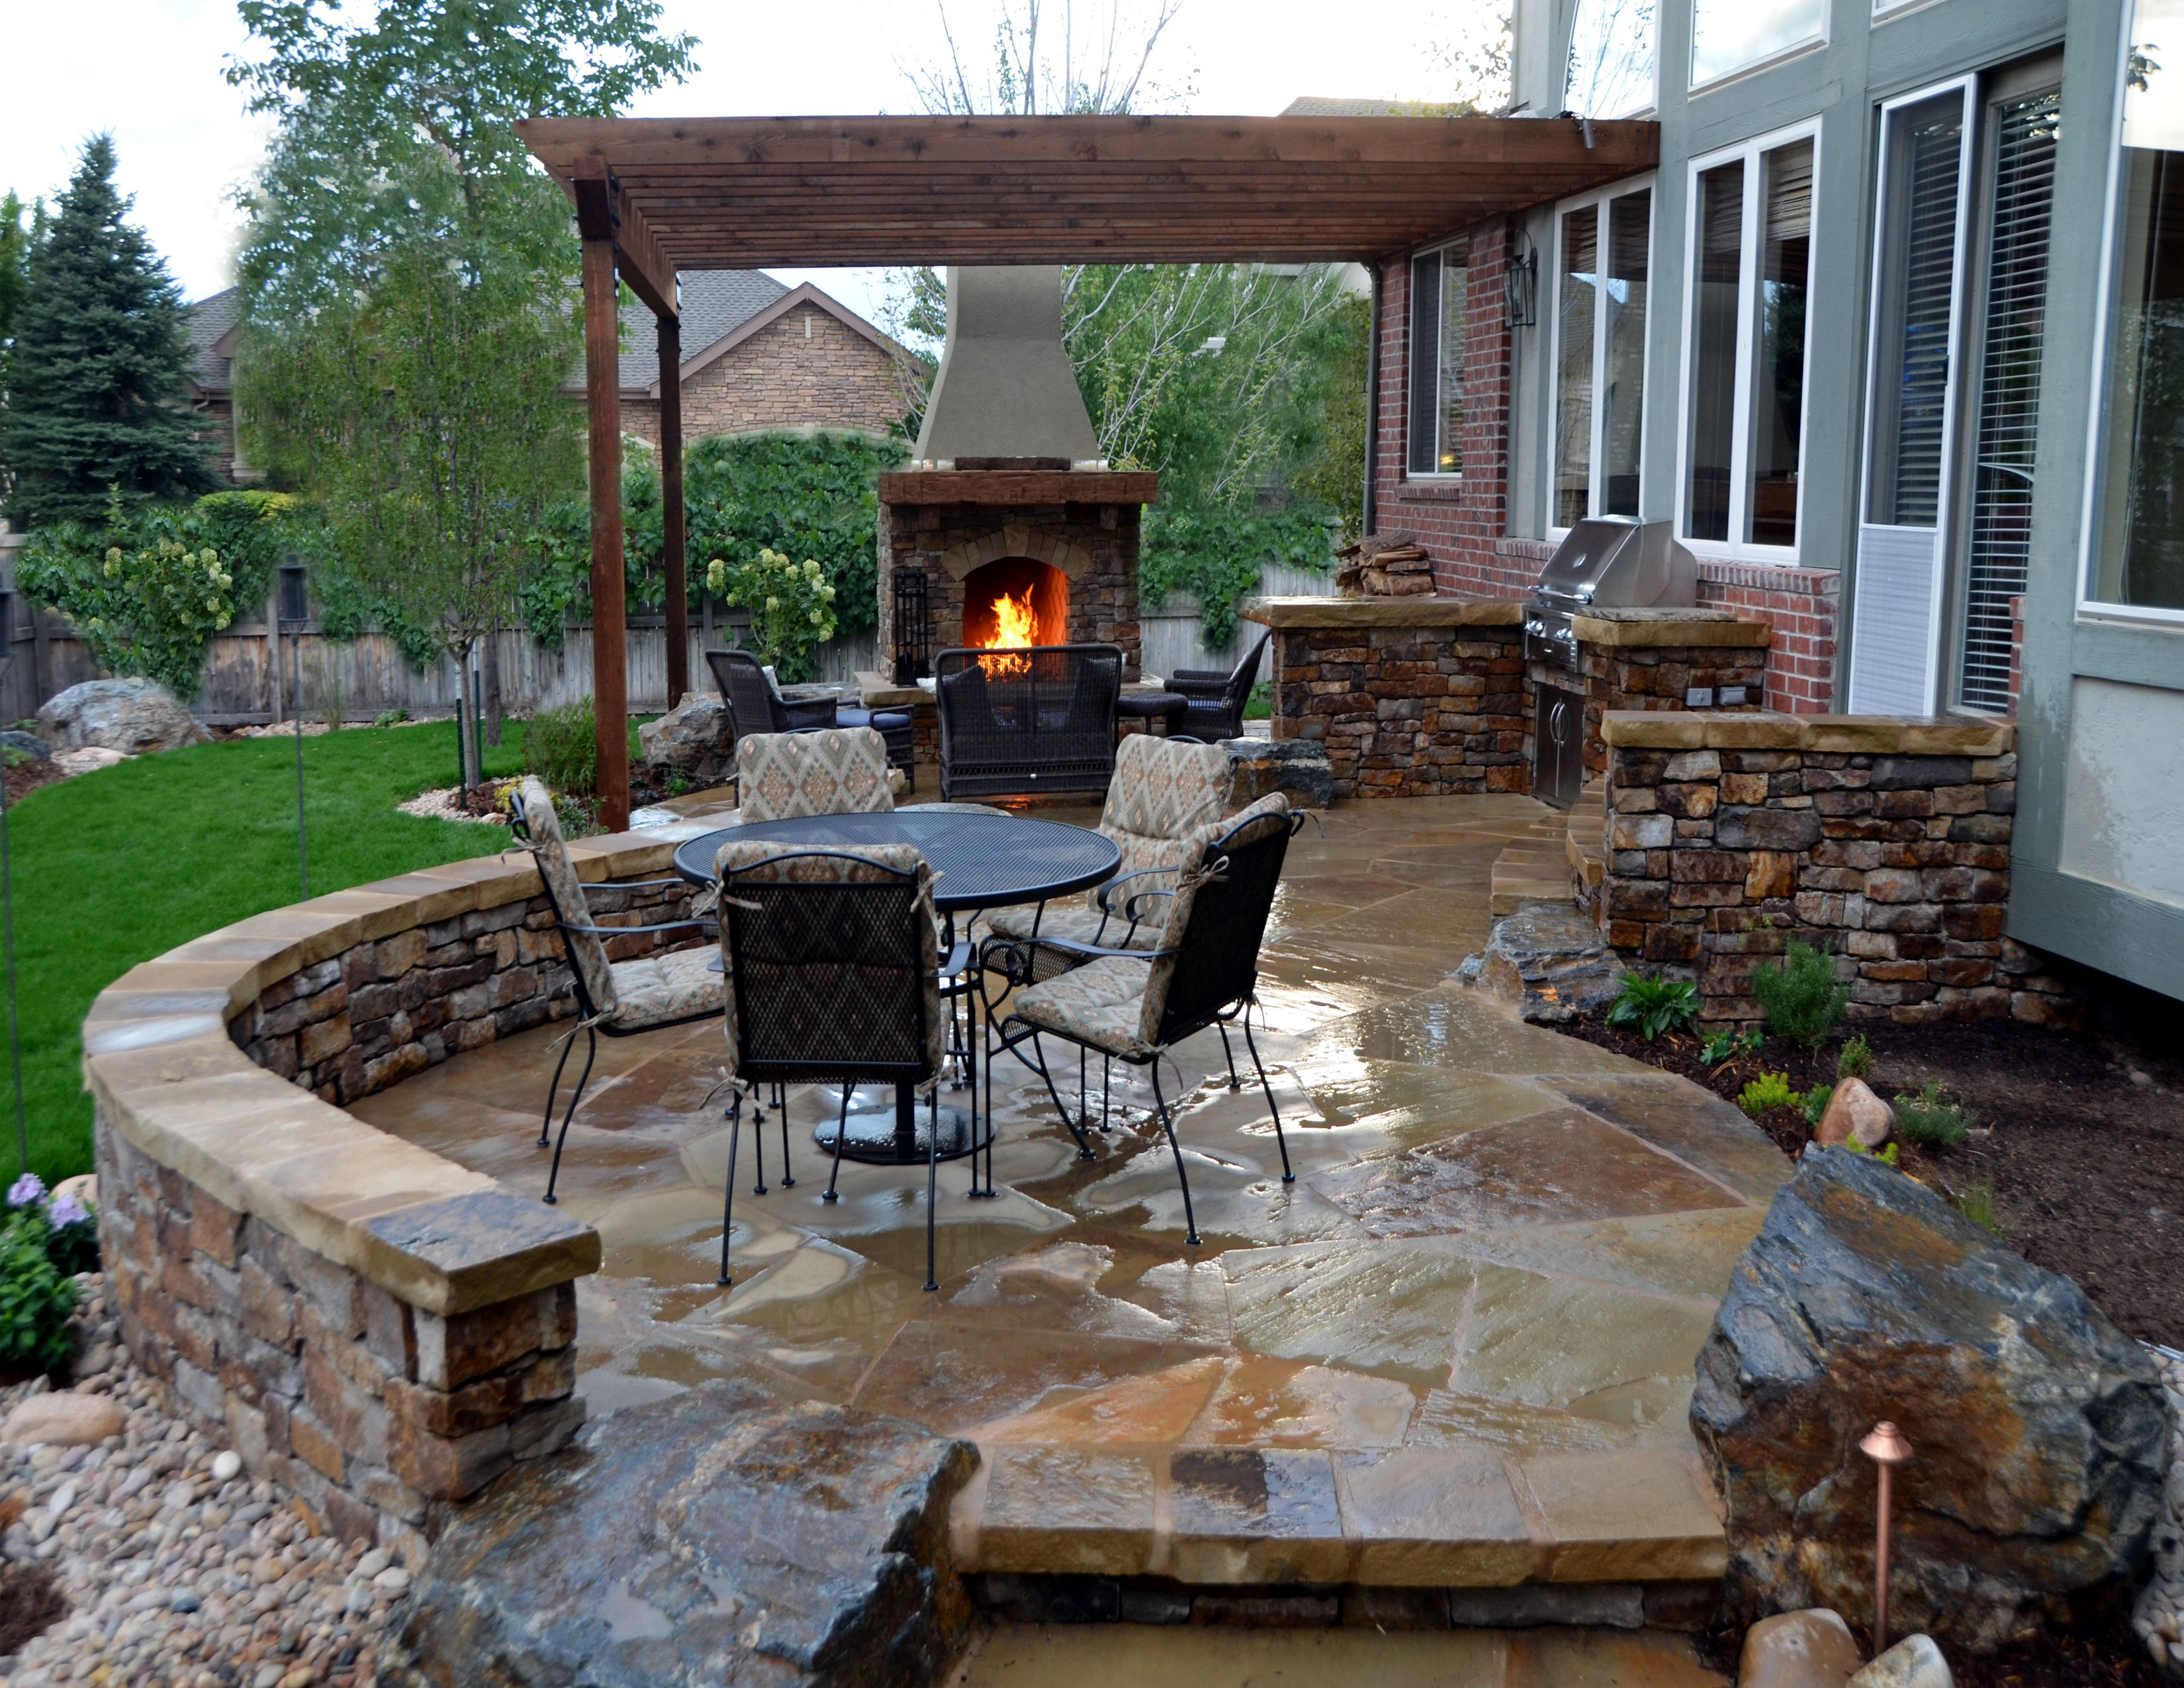 astounding roofless backyard patio ideas with granite floor and brick low  fence also fireplace KSNDTVC